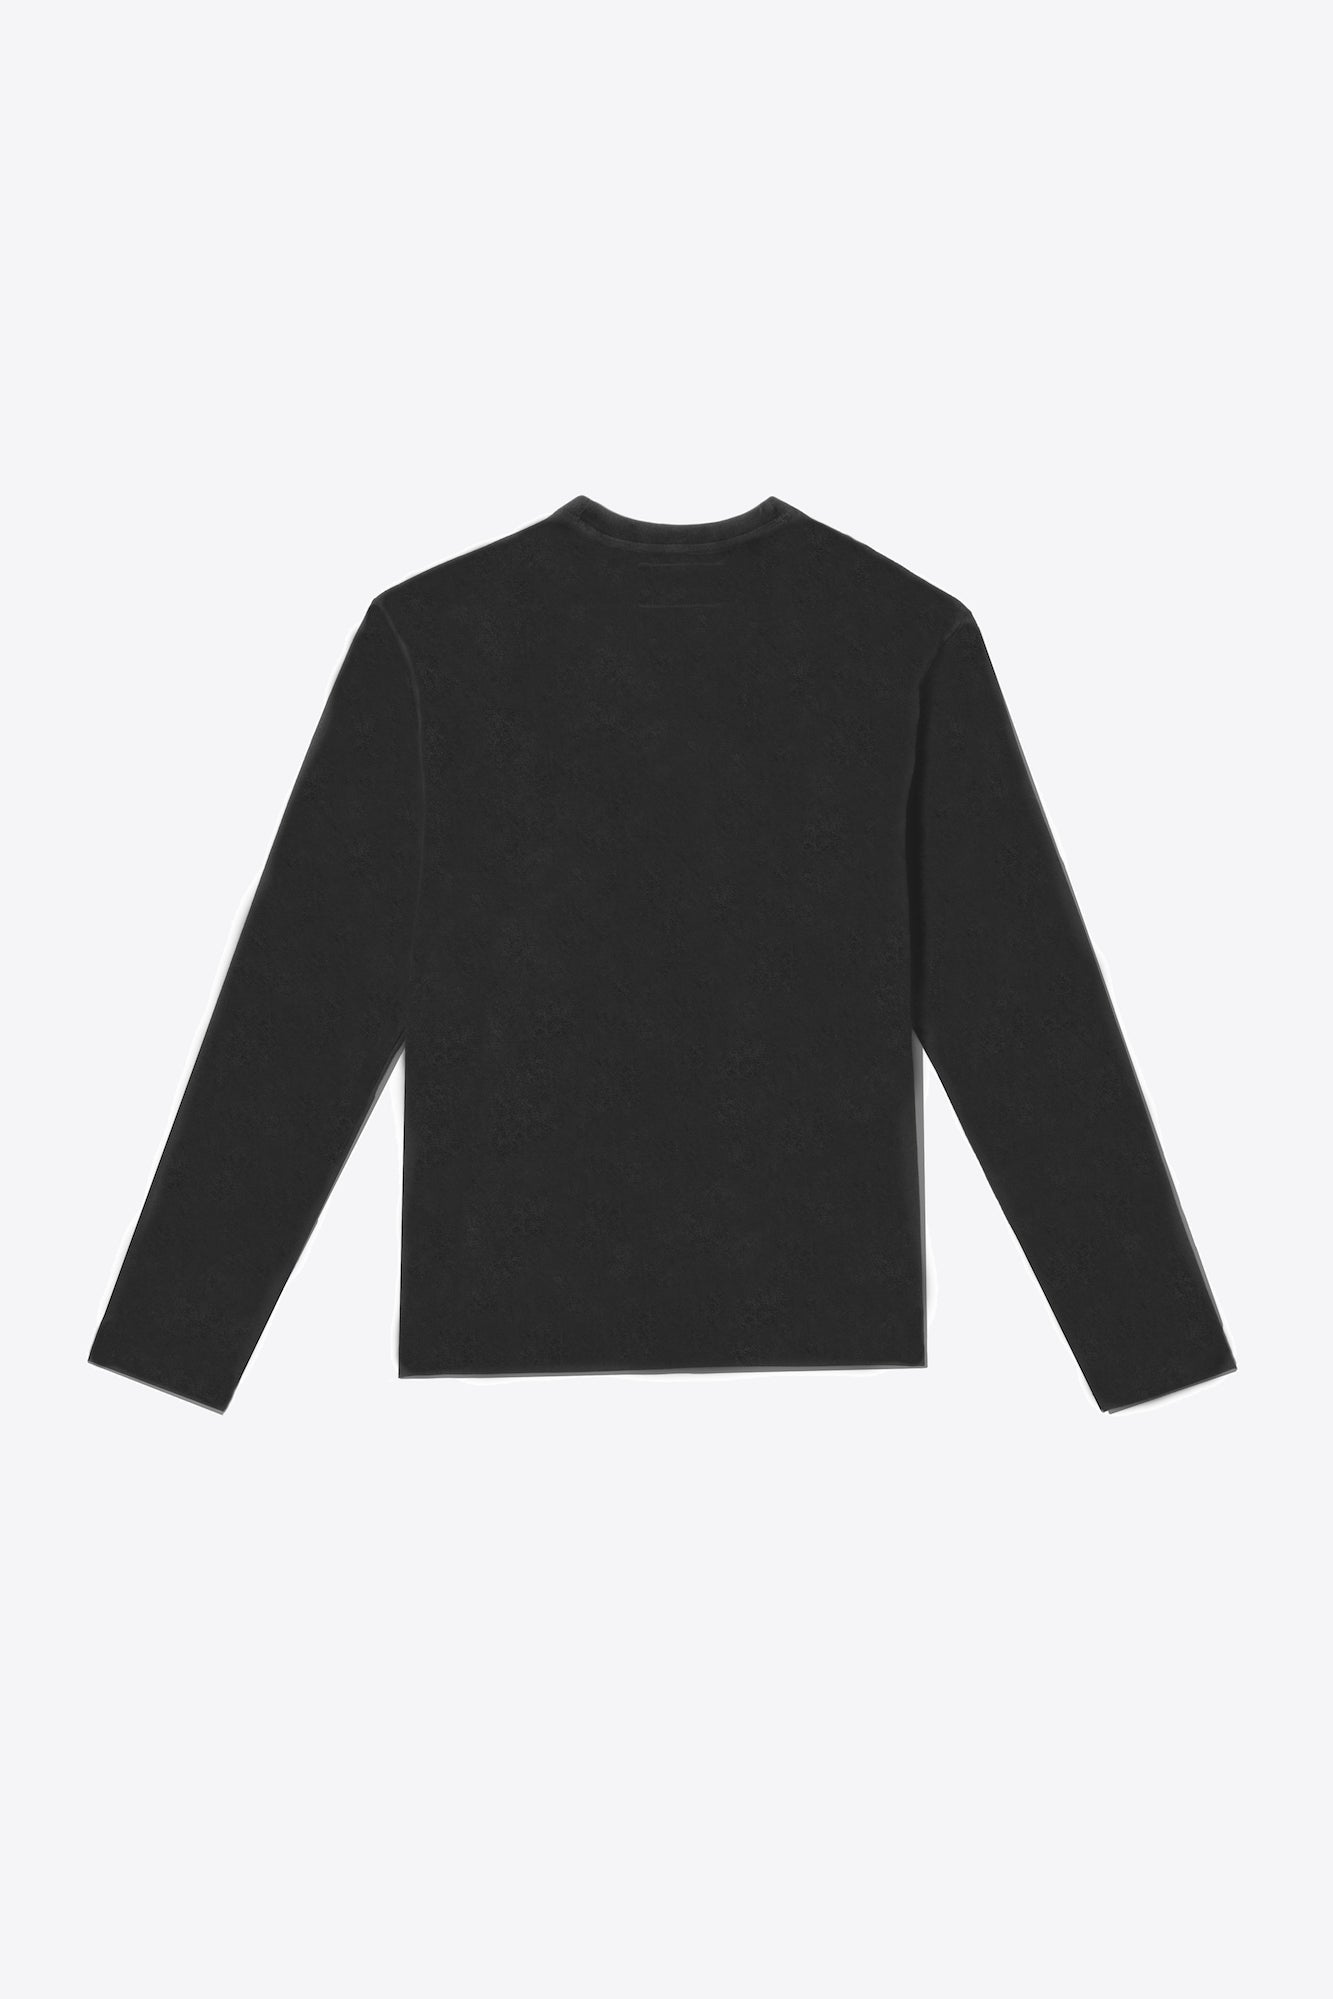 Faded Black Tonal Embroidered Long Sleeve